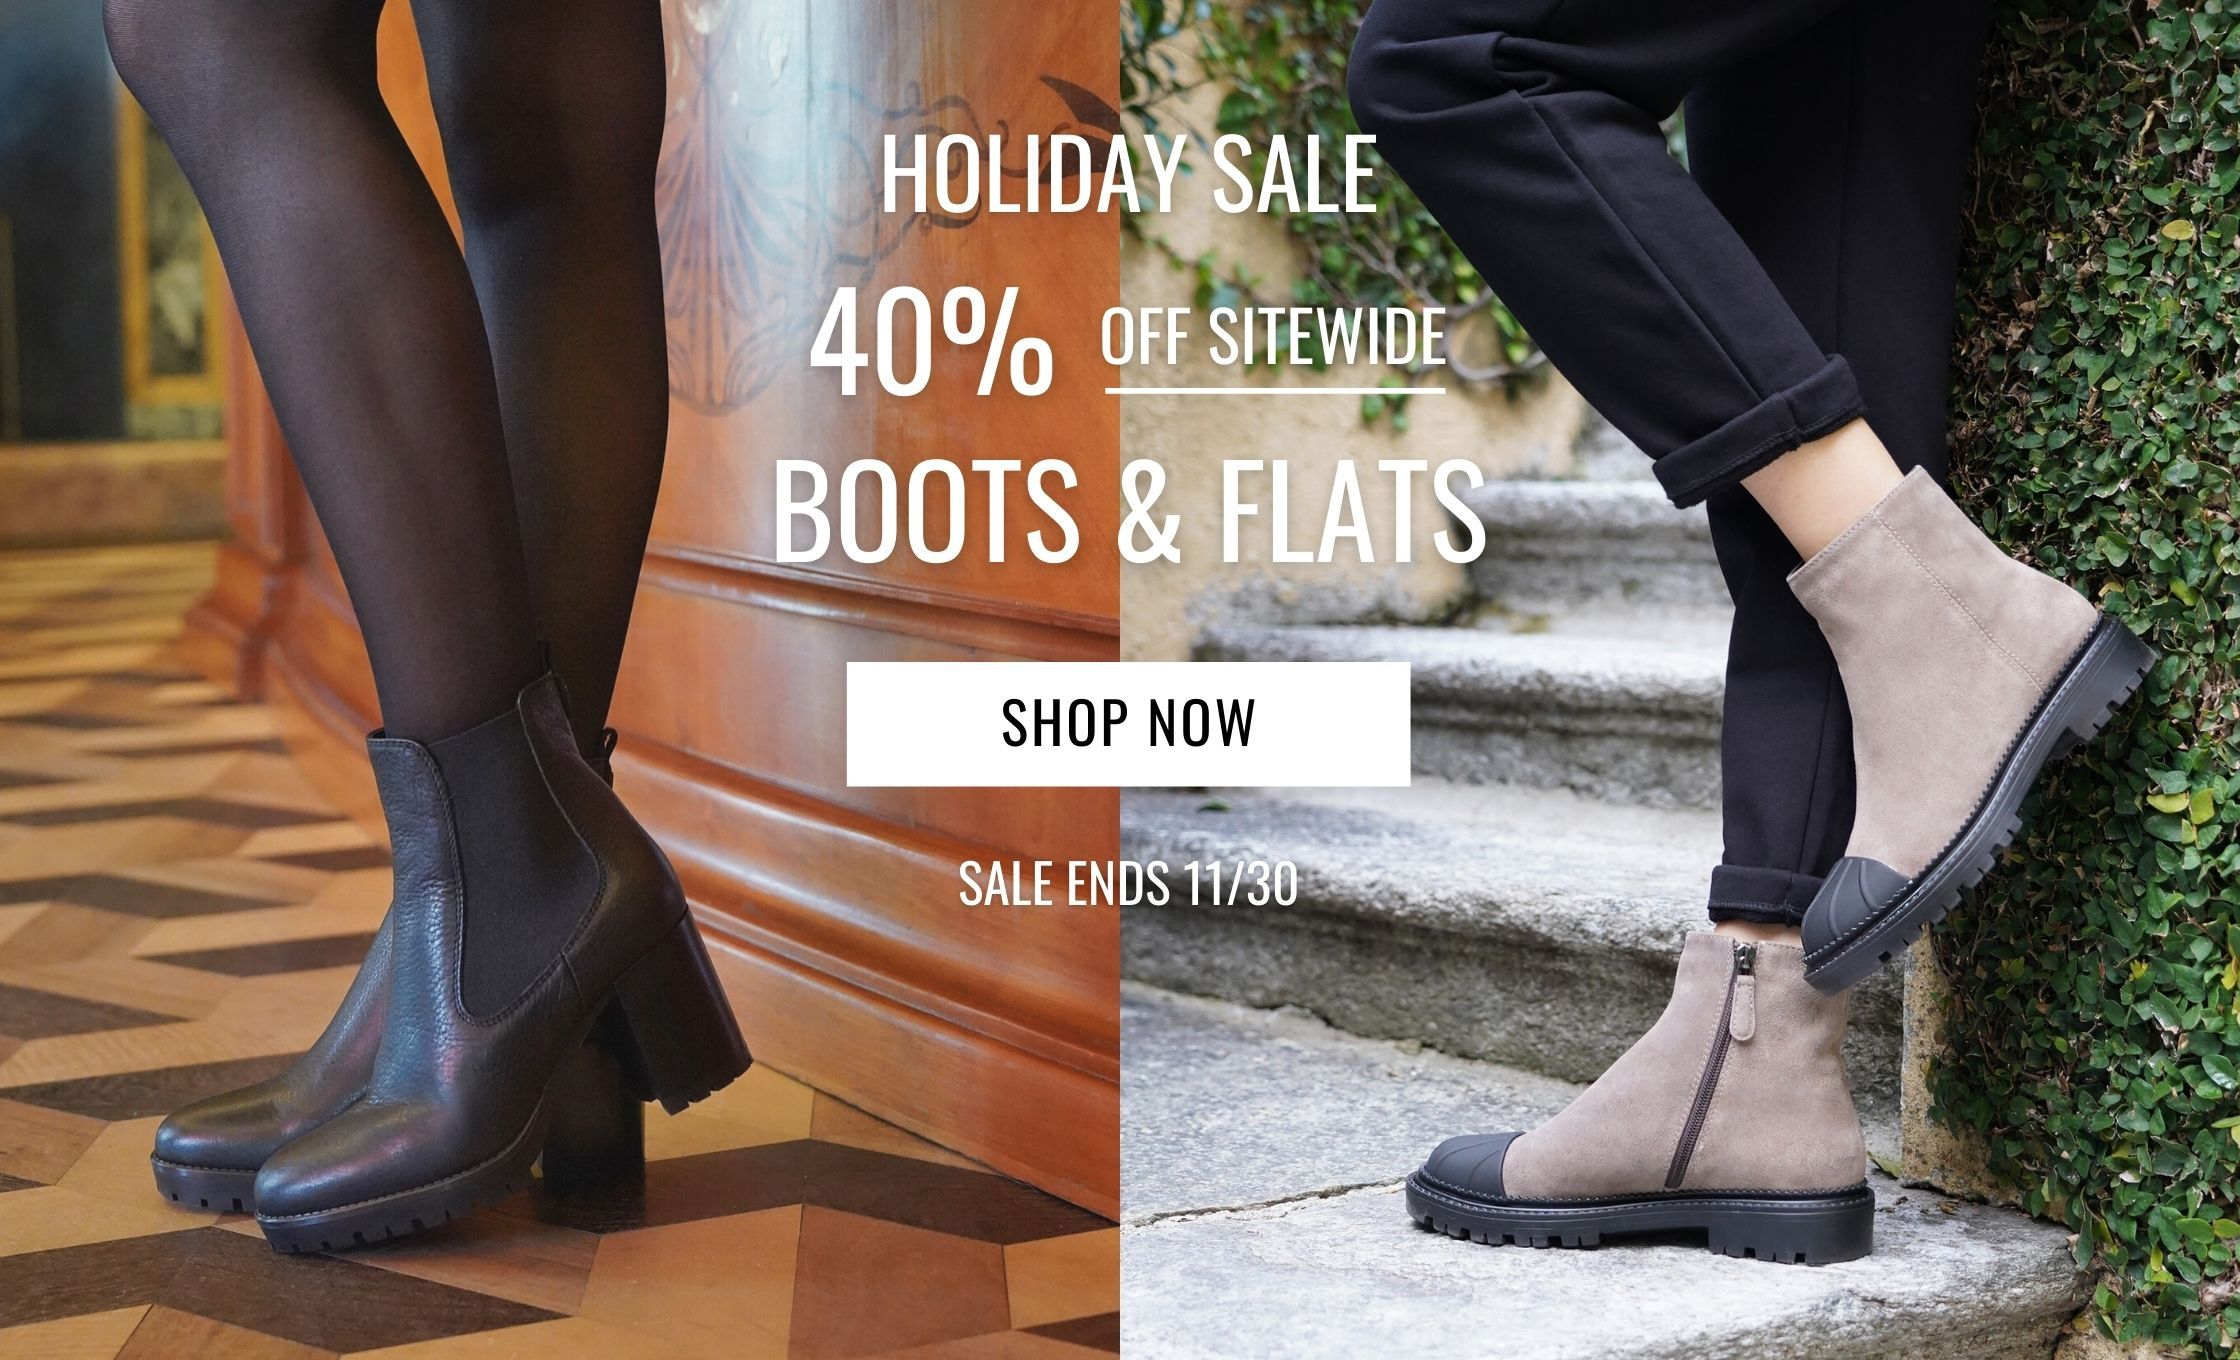 Holiday Sale - 40% Off Sitewide - Boots & Flats